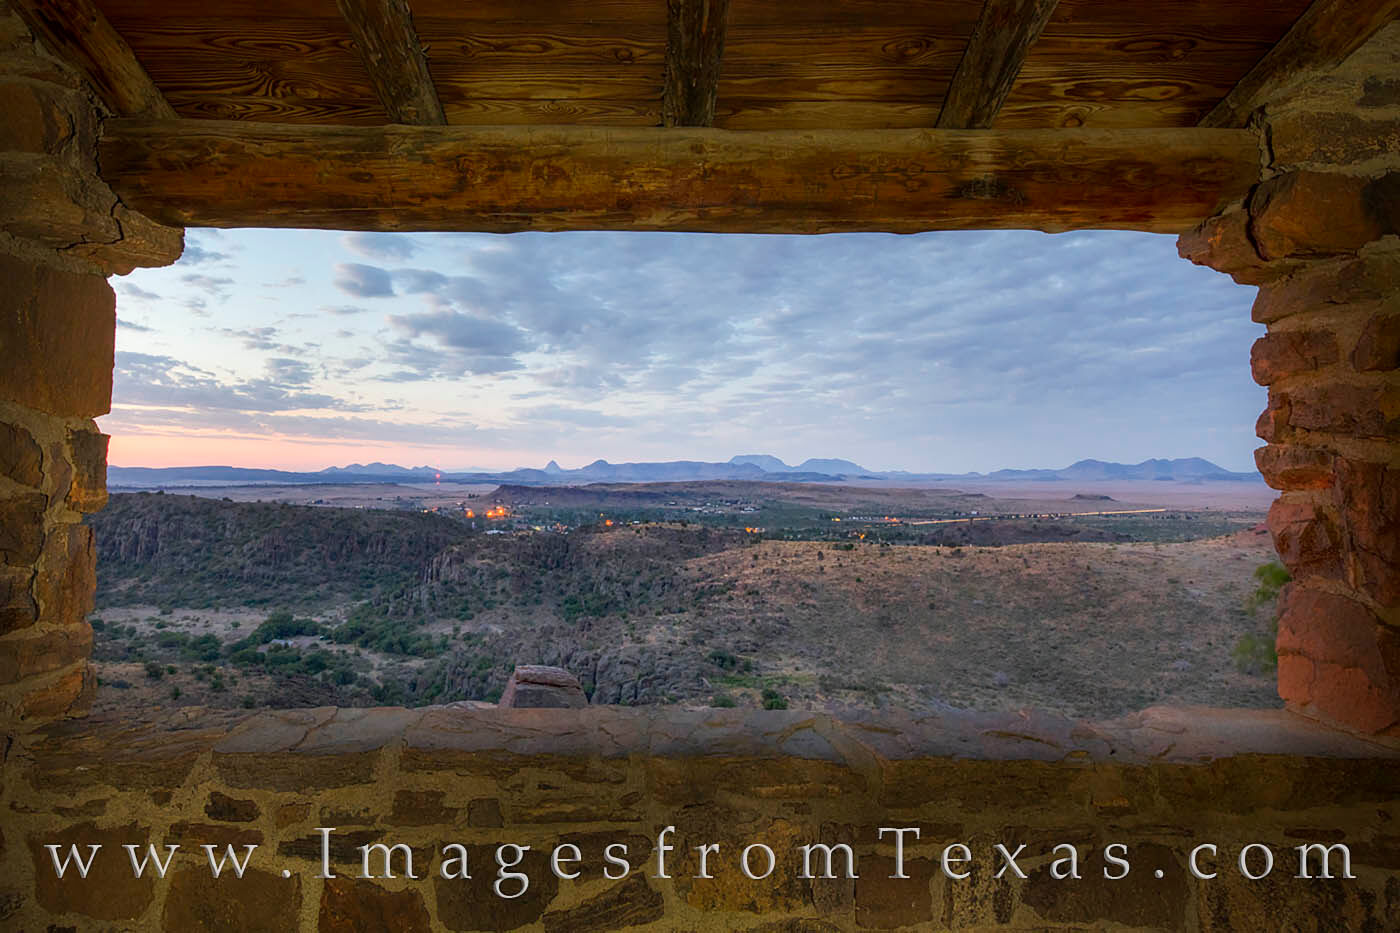 davis mountains, davis mountains overlook, CCC Trail, CCC structures, Davis Mountains state park, davis mountains photos, fort bend, texas sunrise, photo